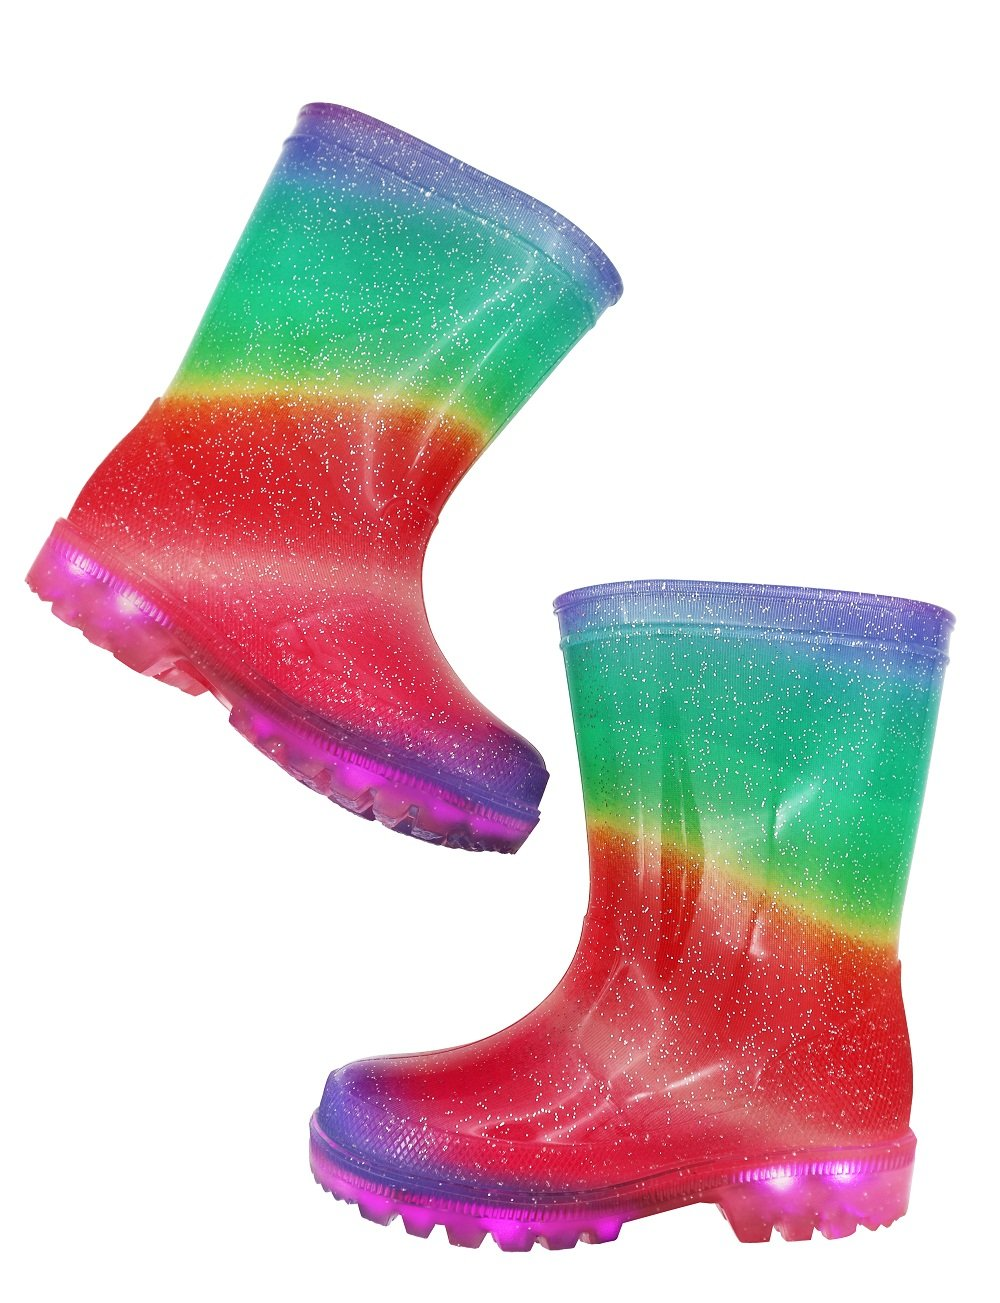 TQ Homebase Girls Rain Boots in Rainbow Pattern with Light up and Fully Waterproof at Sizes for Toddlers and Kids 10 M